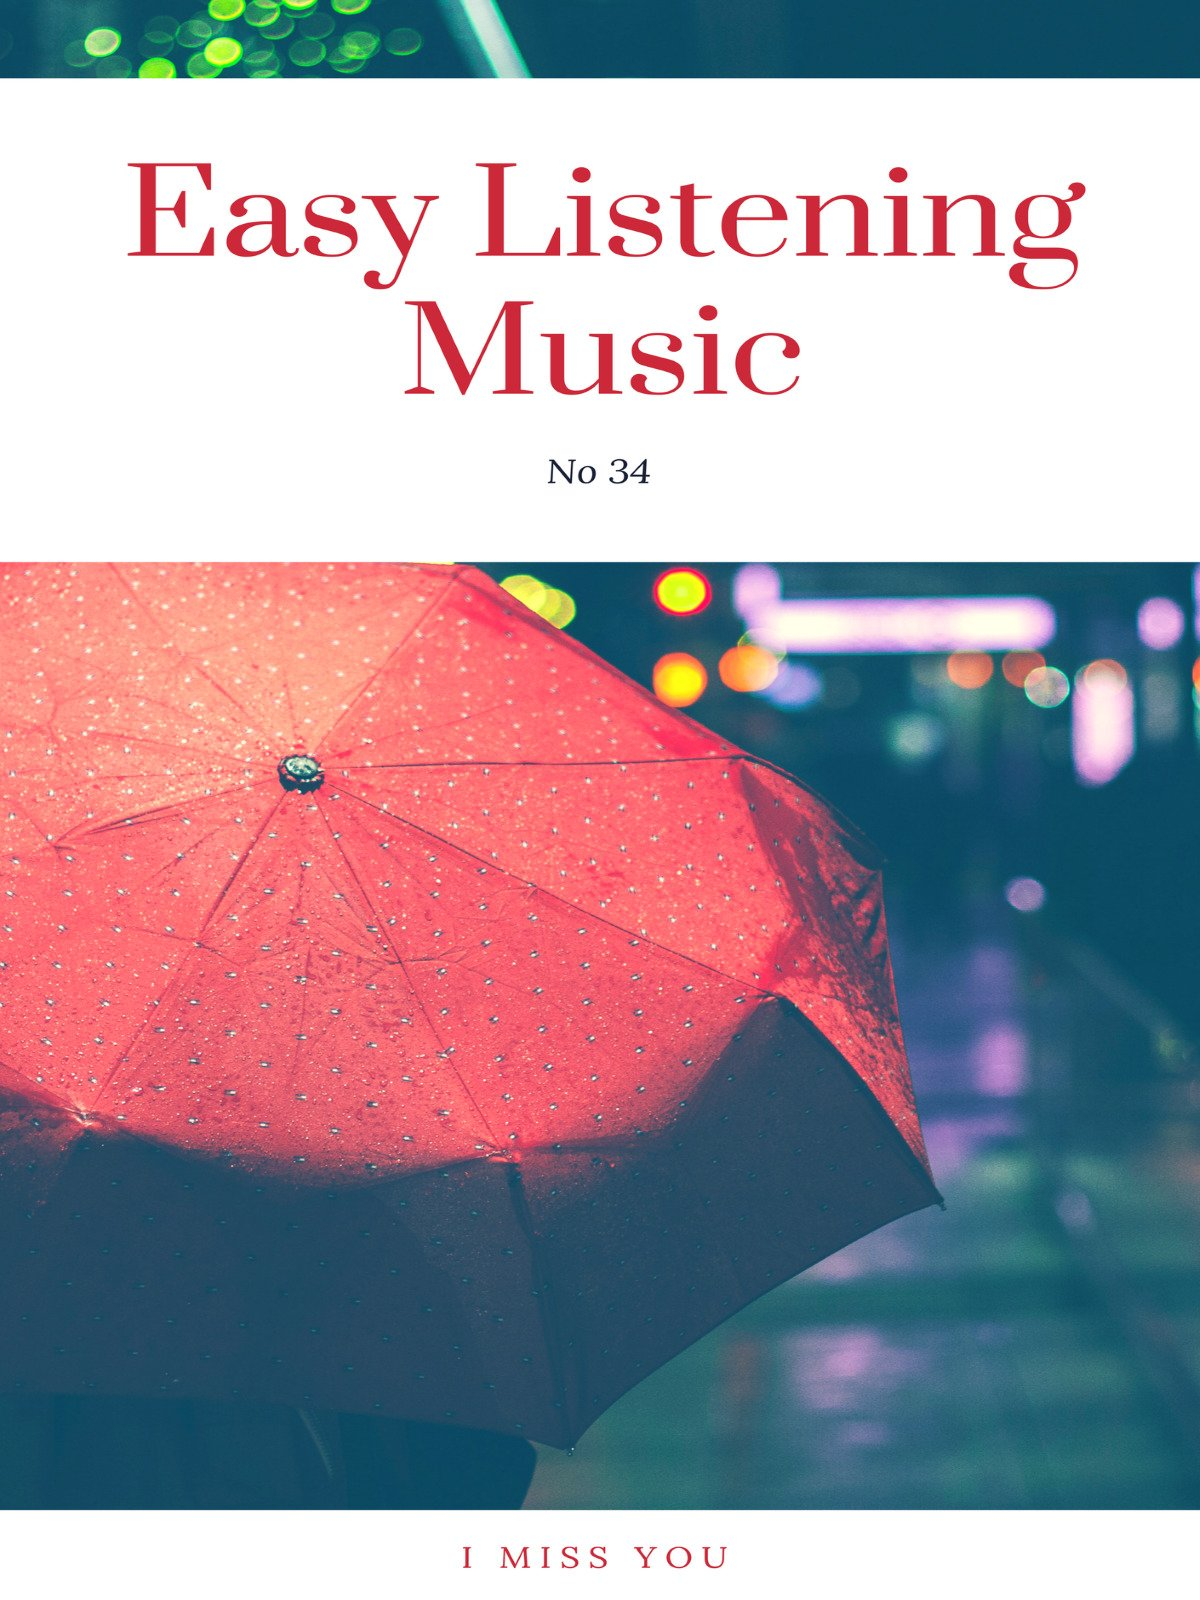 I Miss You (Easy Listening Music no 34)